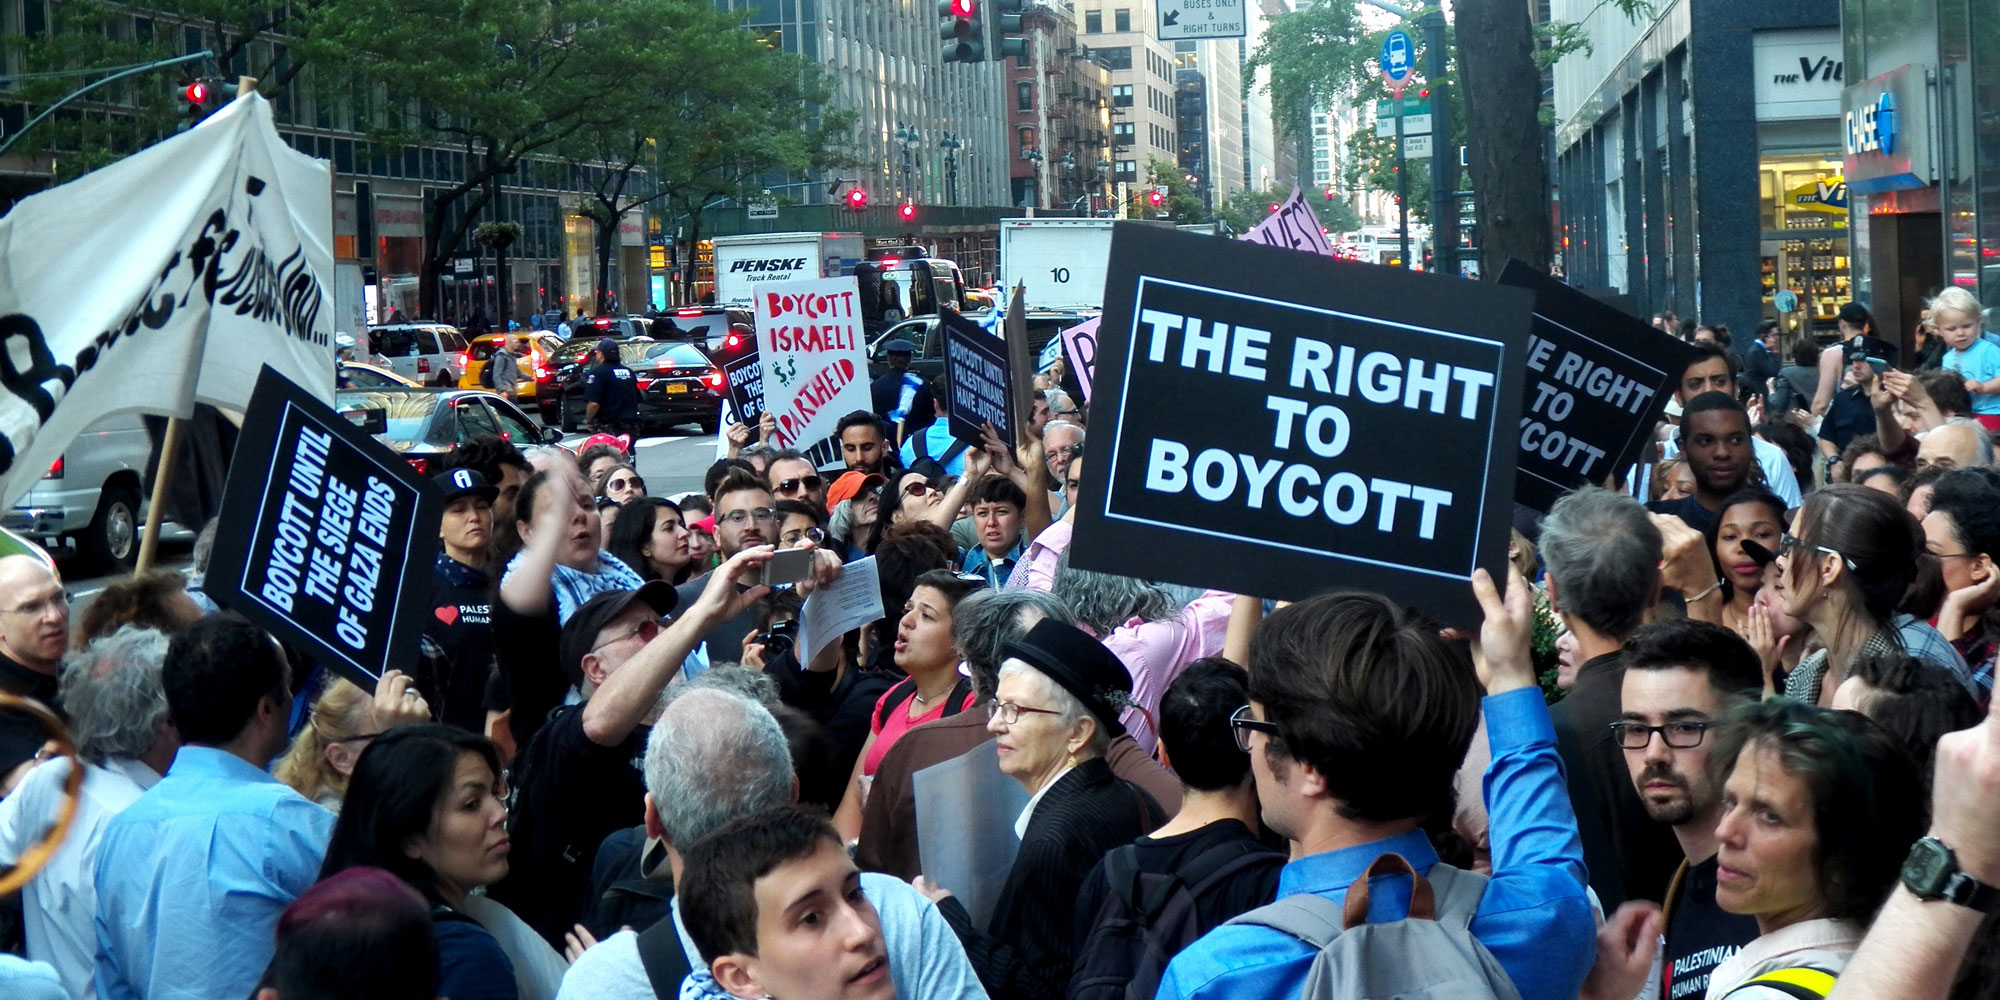 Bds 300 New Push For Law To Criminalize Israel Boycott Would Give Donald